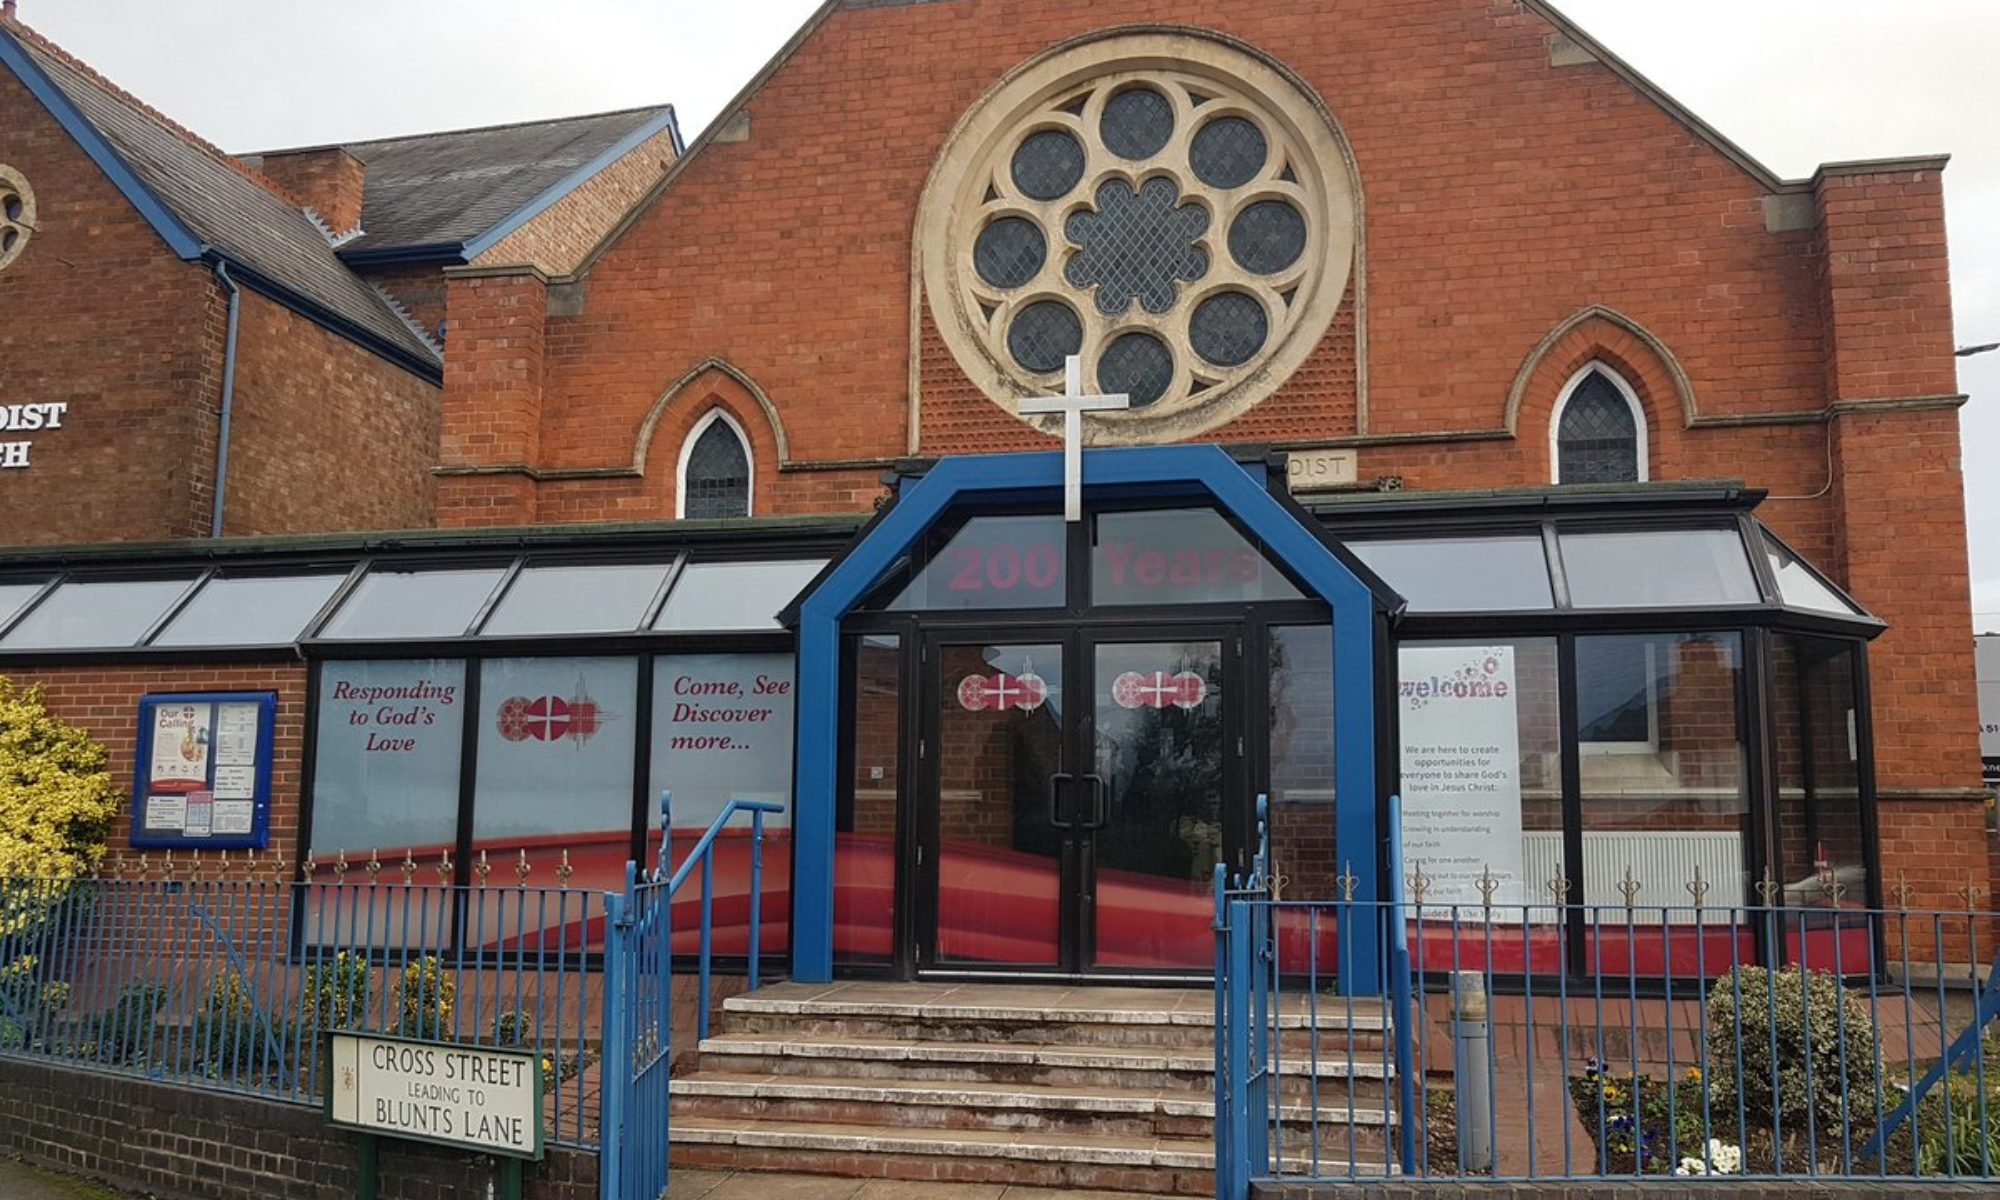 Wigston Magna Methodist Church